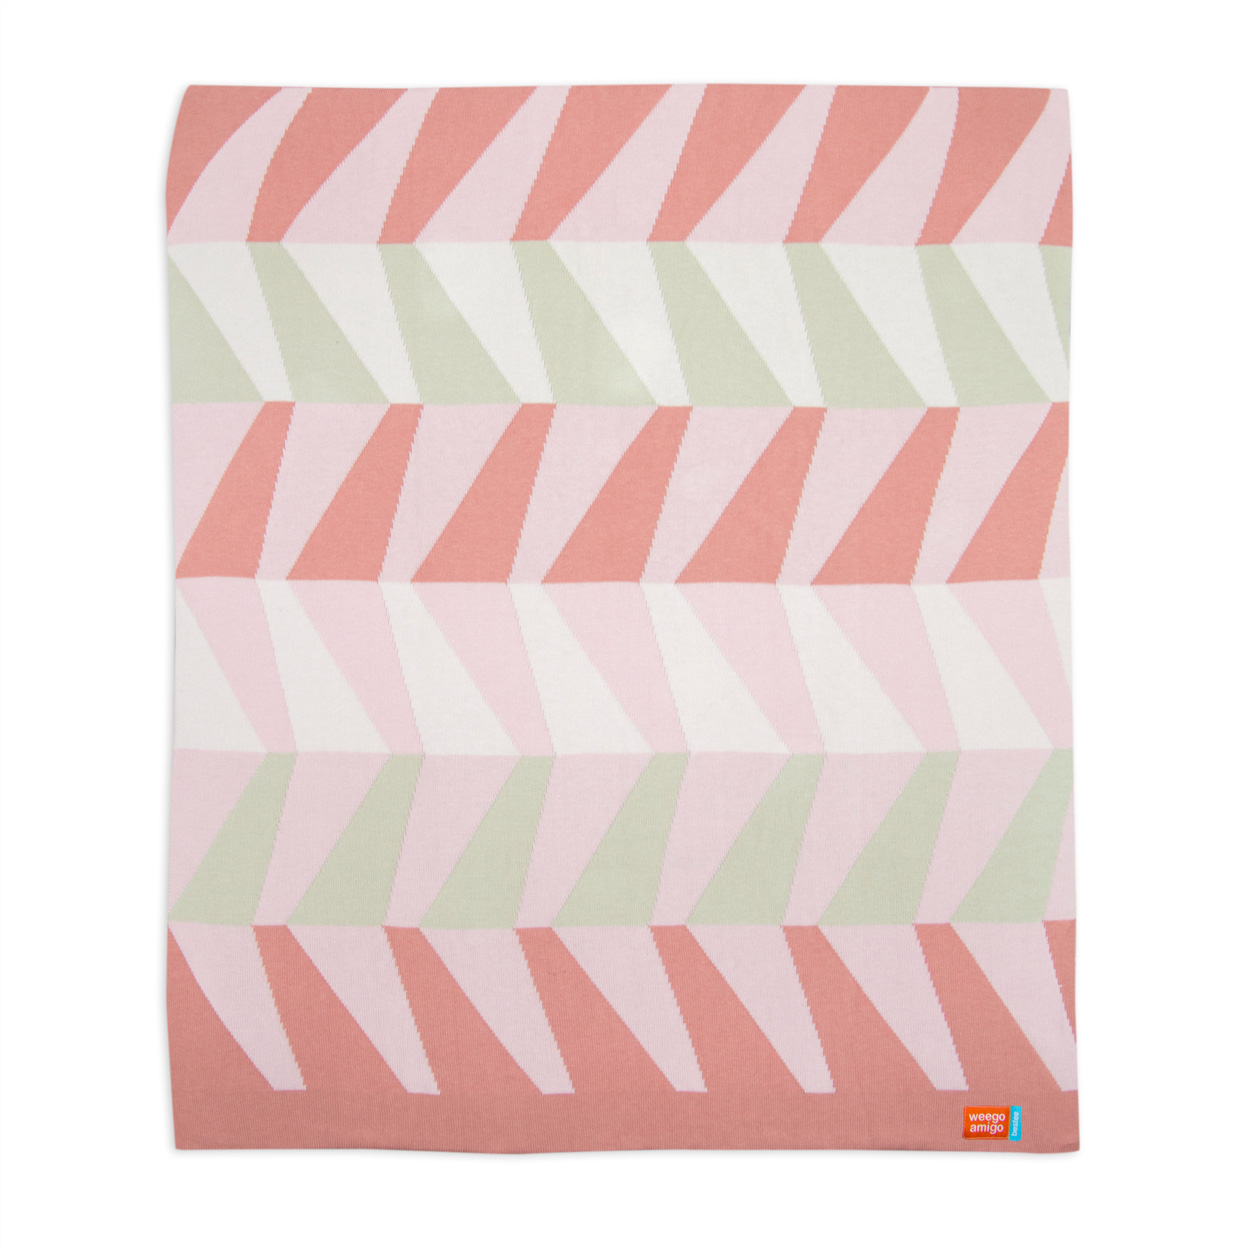 Weegoamigo - Bestee Knit Blankets Bamboo/Cotton - Florence